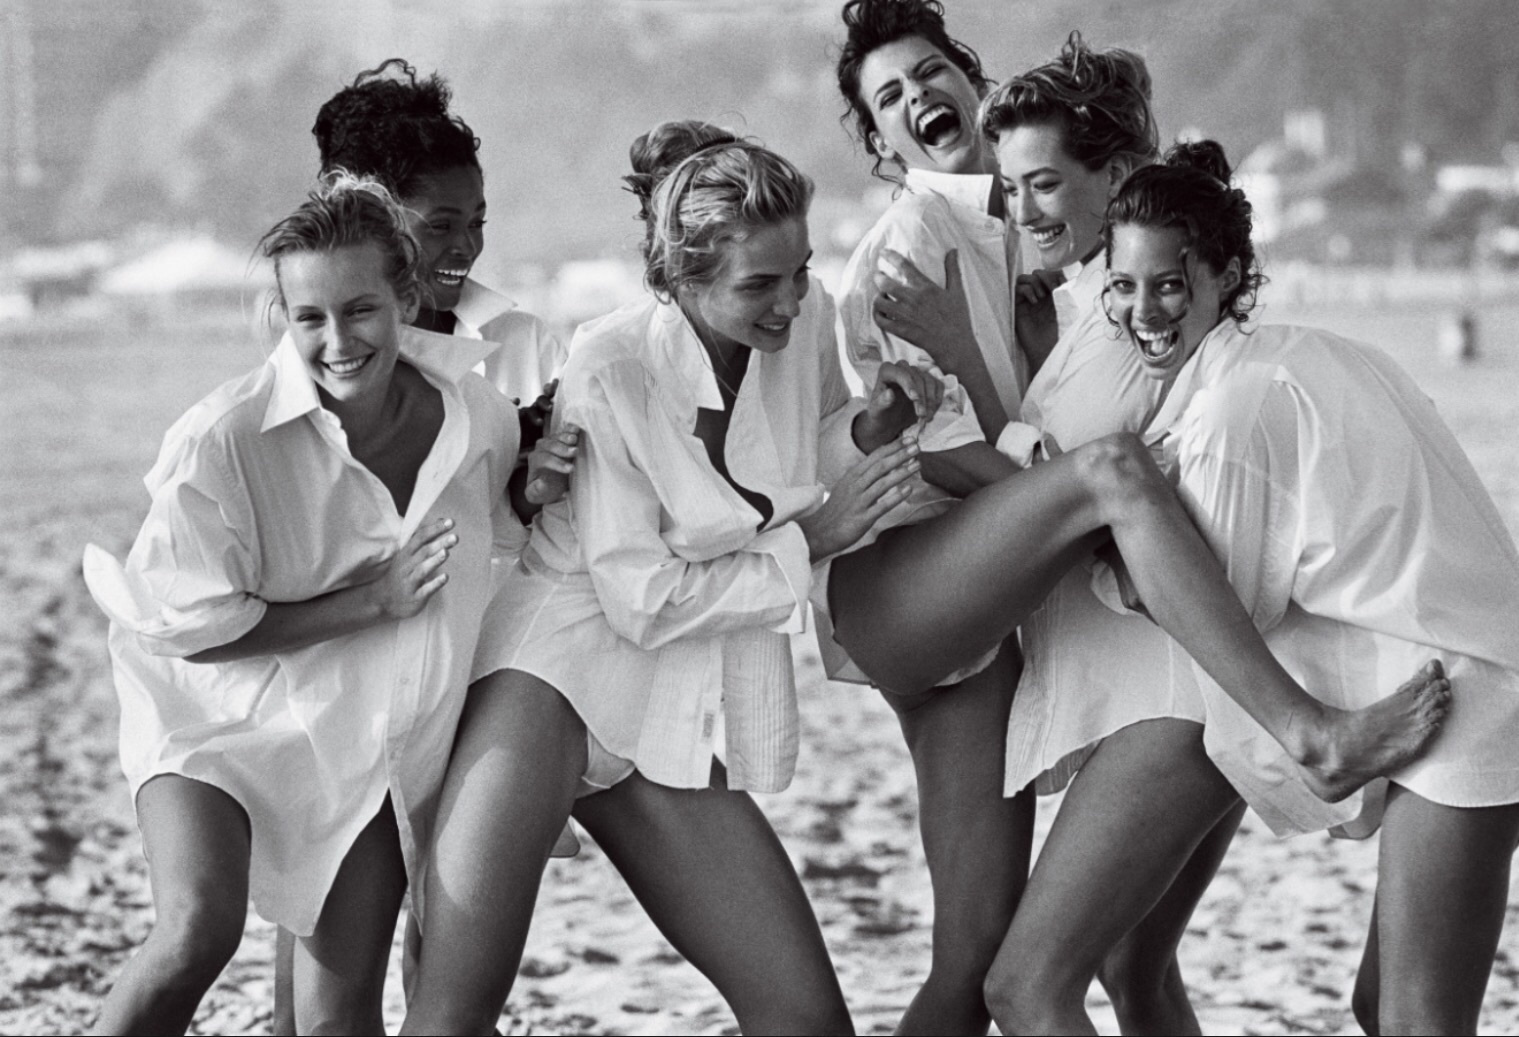 White Shirts: Estelle Léfebure, Karen Alexander, Rachel Williams, Linda Evangelista, Tatjana Patitz & Christy Turlington, Malibu, 1988 © Peter Lindbergh (Courtesy of Peter Lindbergh, Paris / Gagosian Gallery)